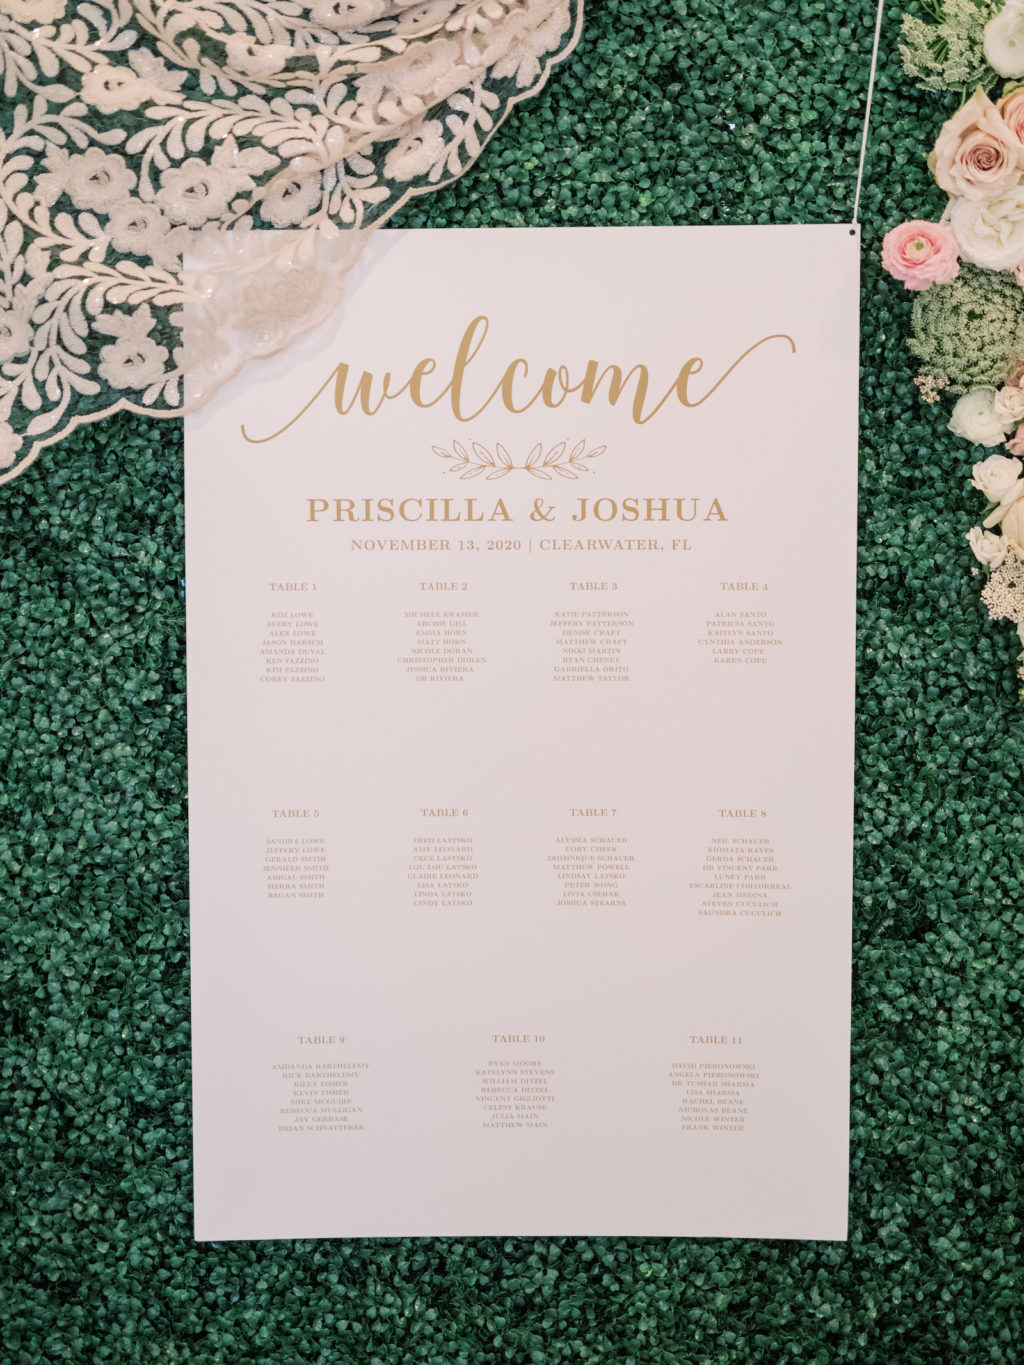 Timeless Romantic Wedding Reception Decor, Gold and White Traditional Seating Chart | Tampa Bay Wedding Planner Special Moments Event Planning